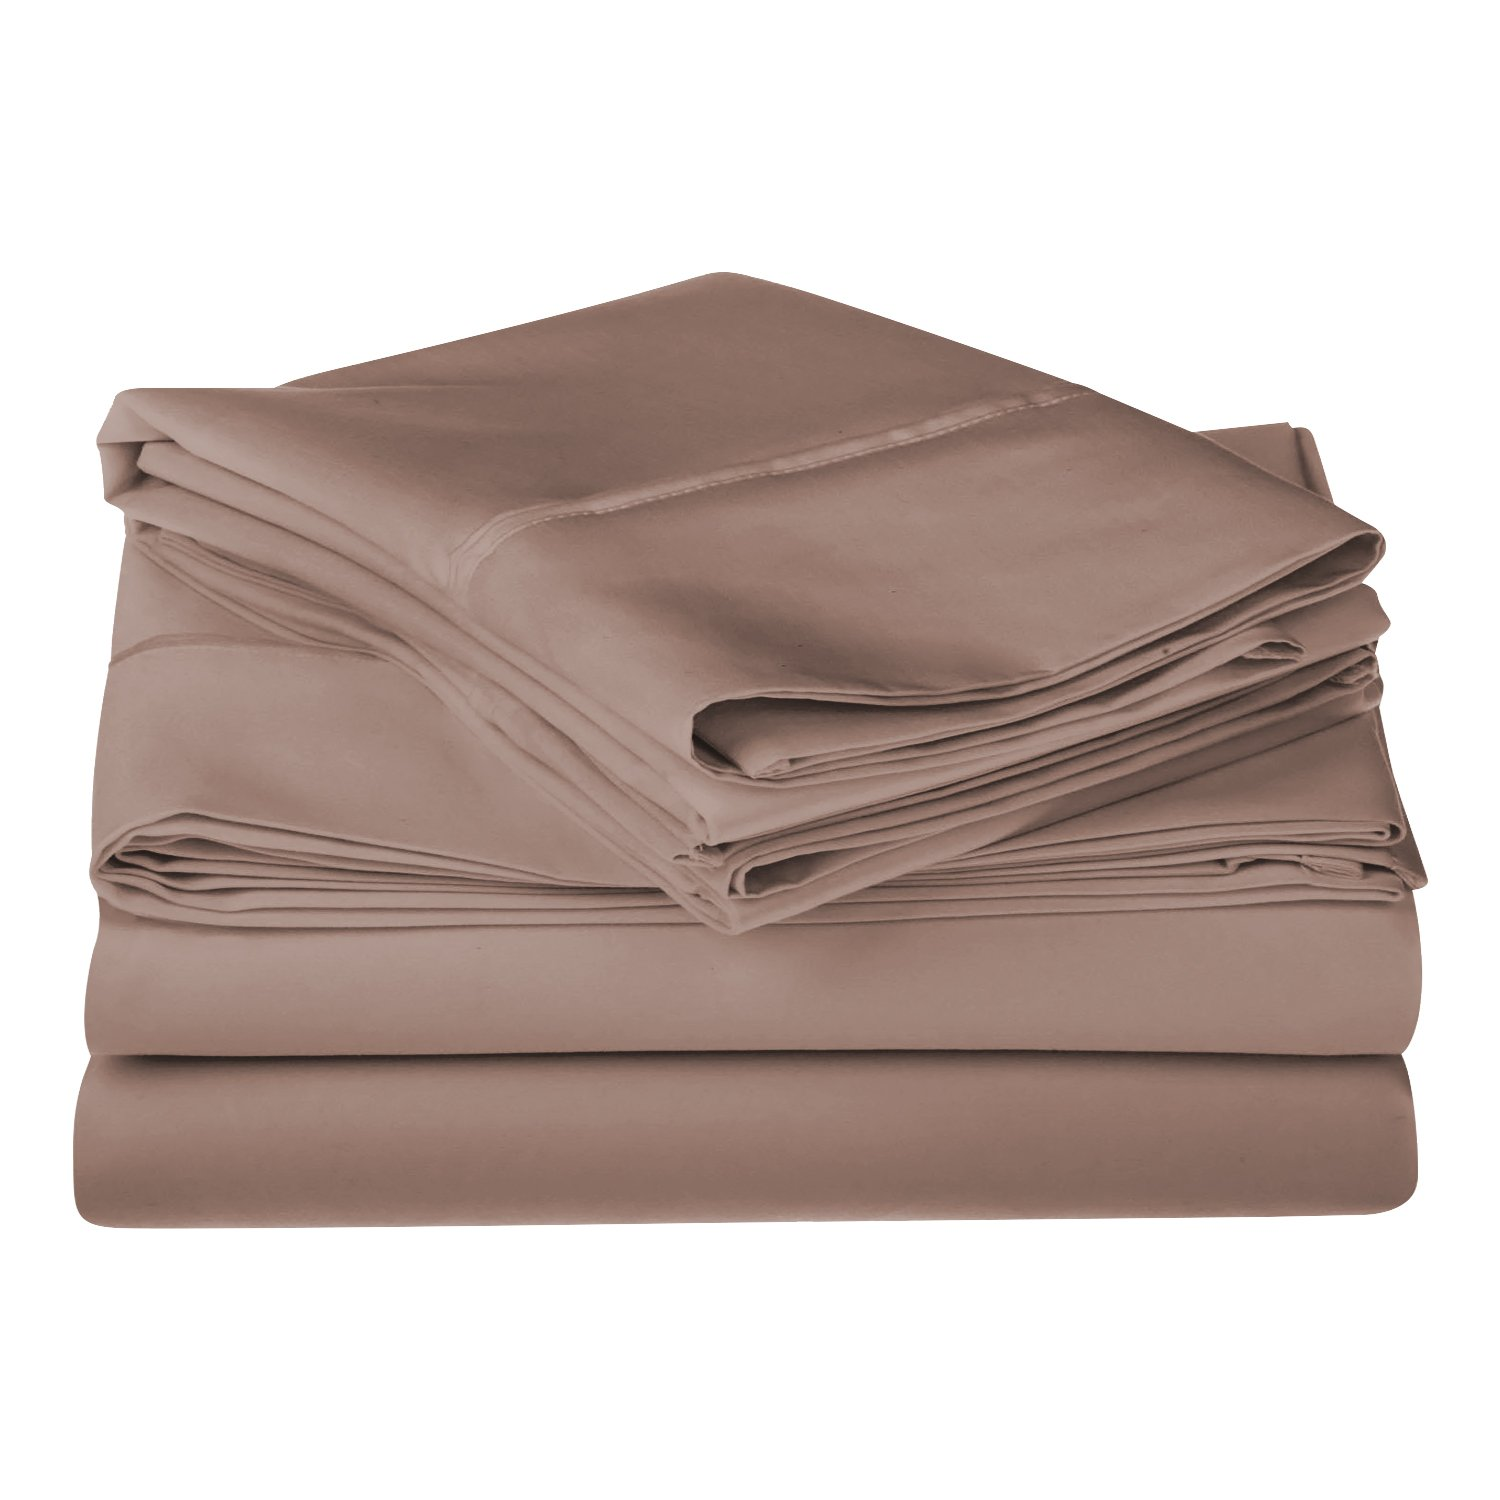 (Queen, Teal) 1200 Thread Count 100% Premium Long-Staple Combed Cotton, Single Ply, Queen Bed Sheet Set, Solid, Taupe B005TPMCX4 クイーン|トープ単色 トープ単色 クイーン